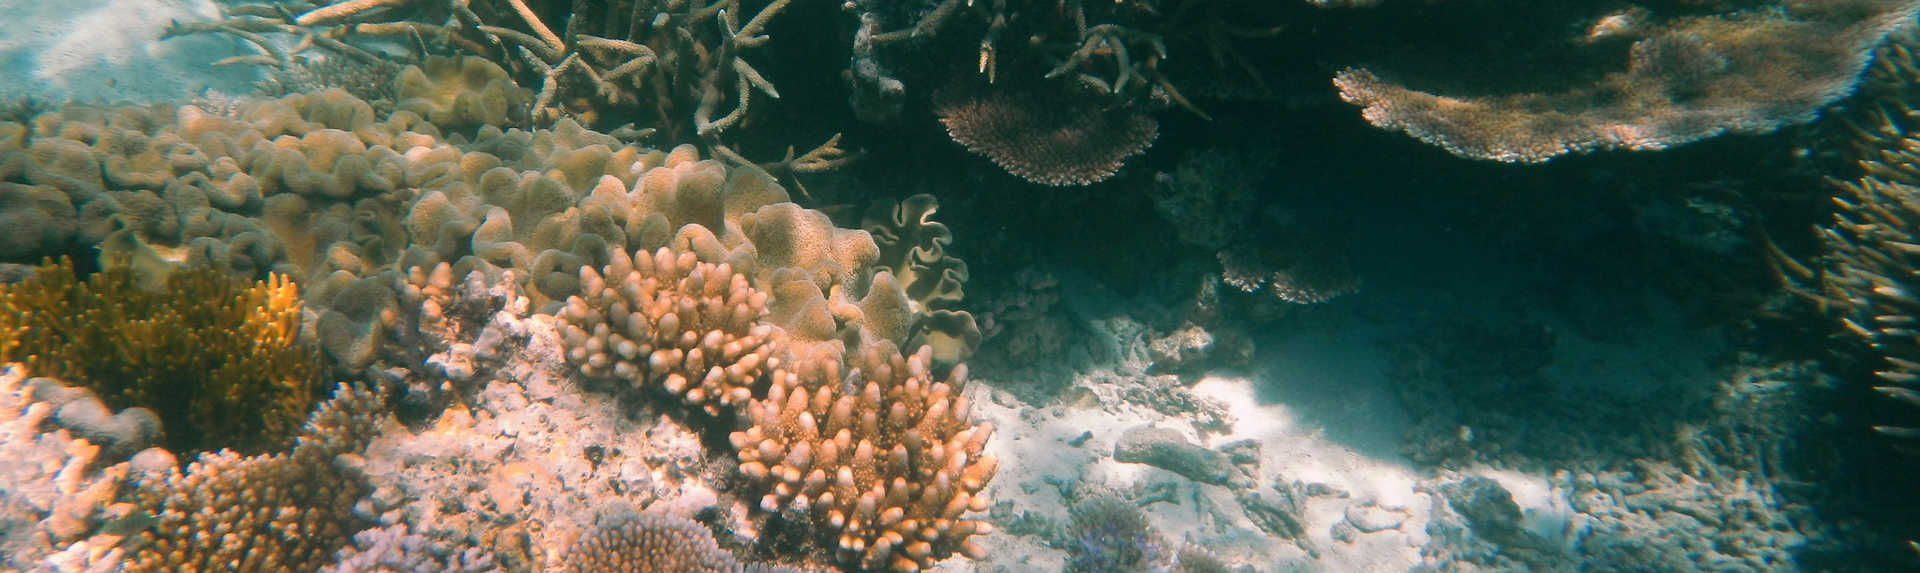 What is the best month to visit the Great Barrier Reef?